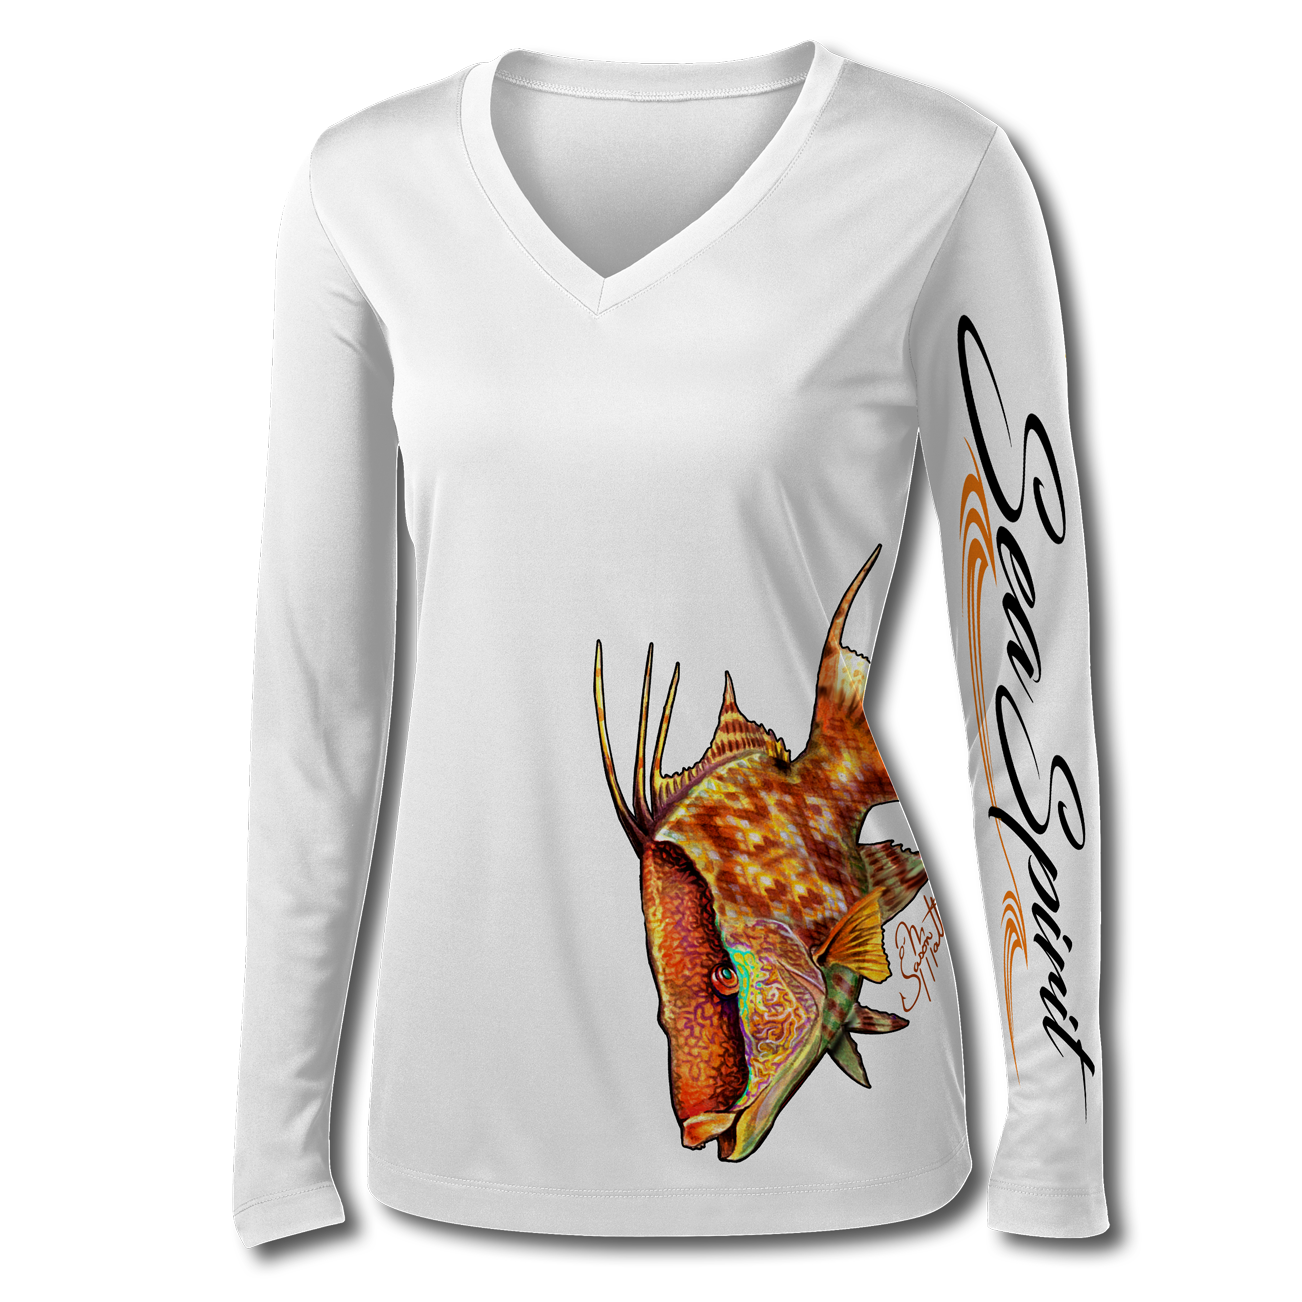 jason-mathias-sea-spirit-womans-hogfish-hogsnapper-white-front.png